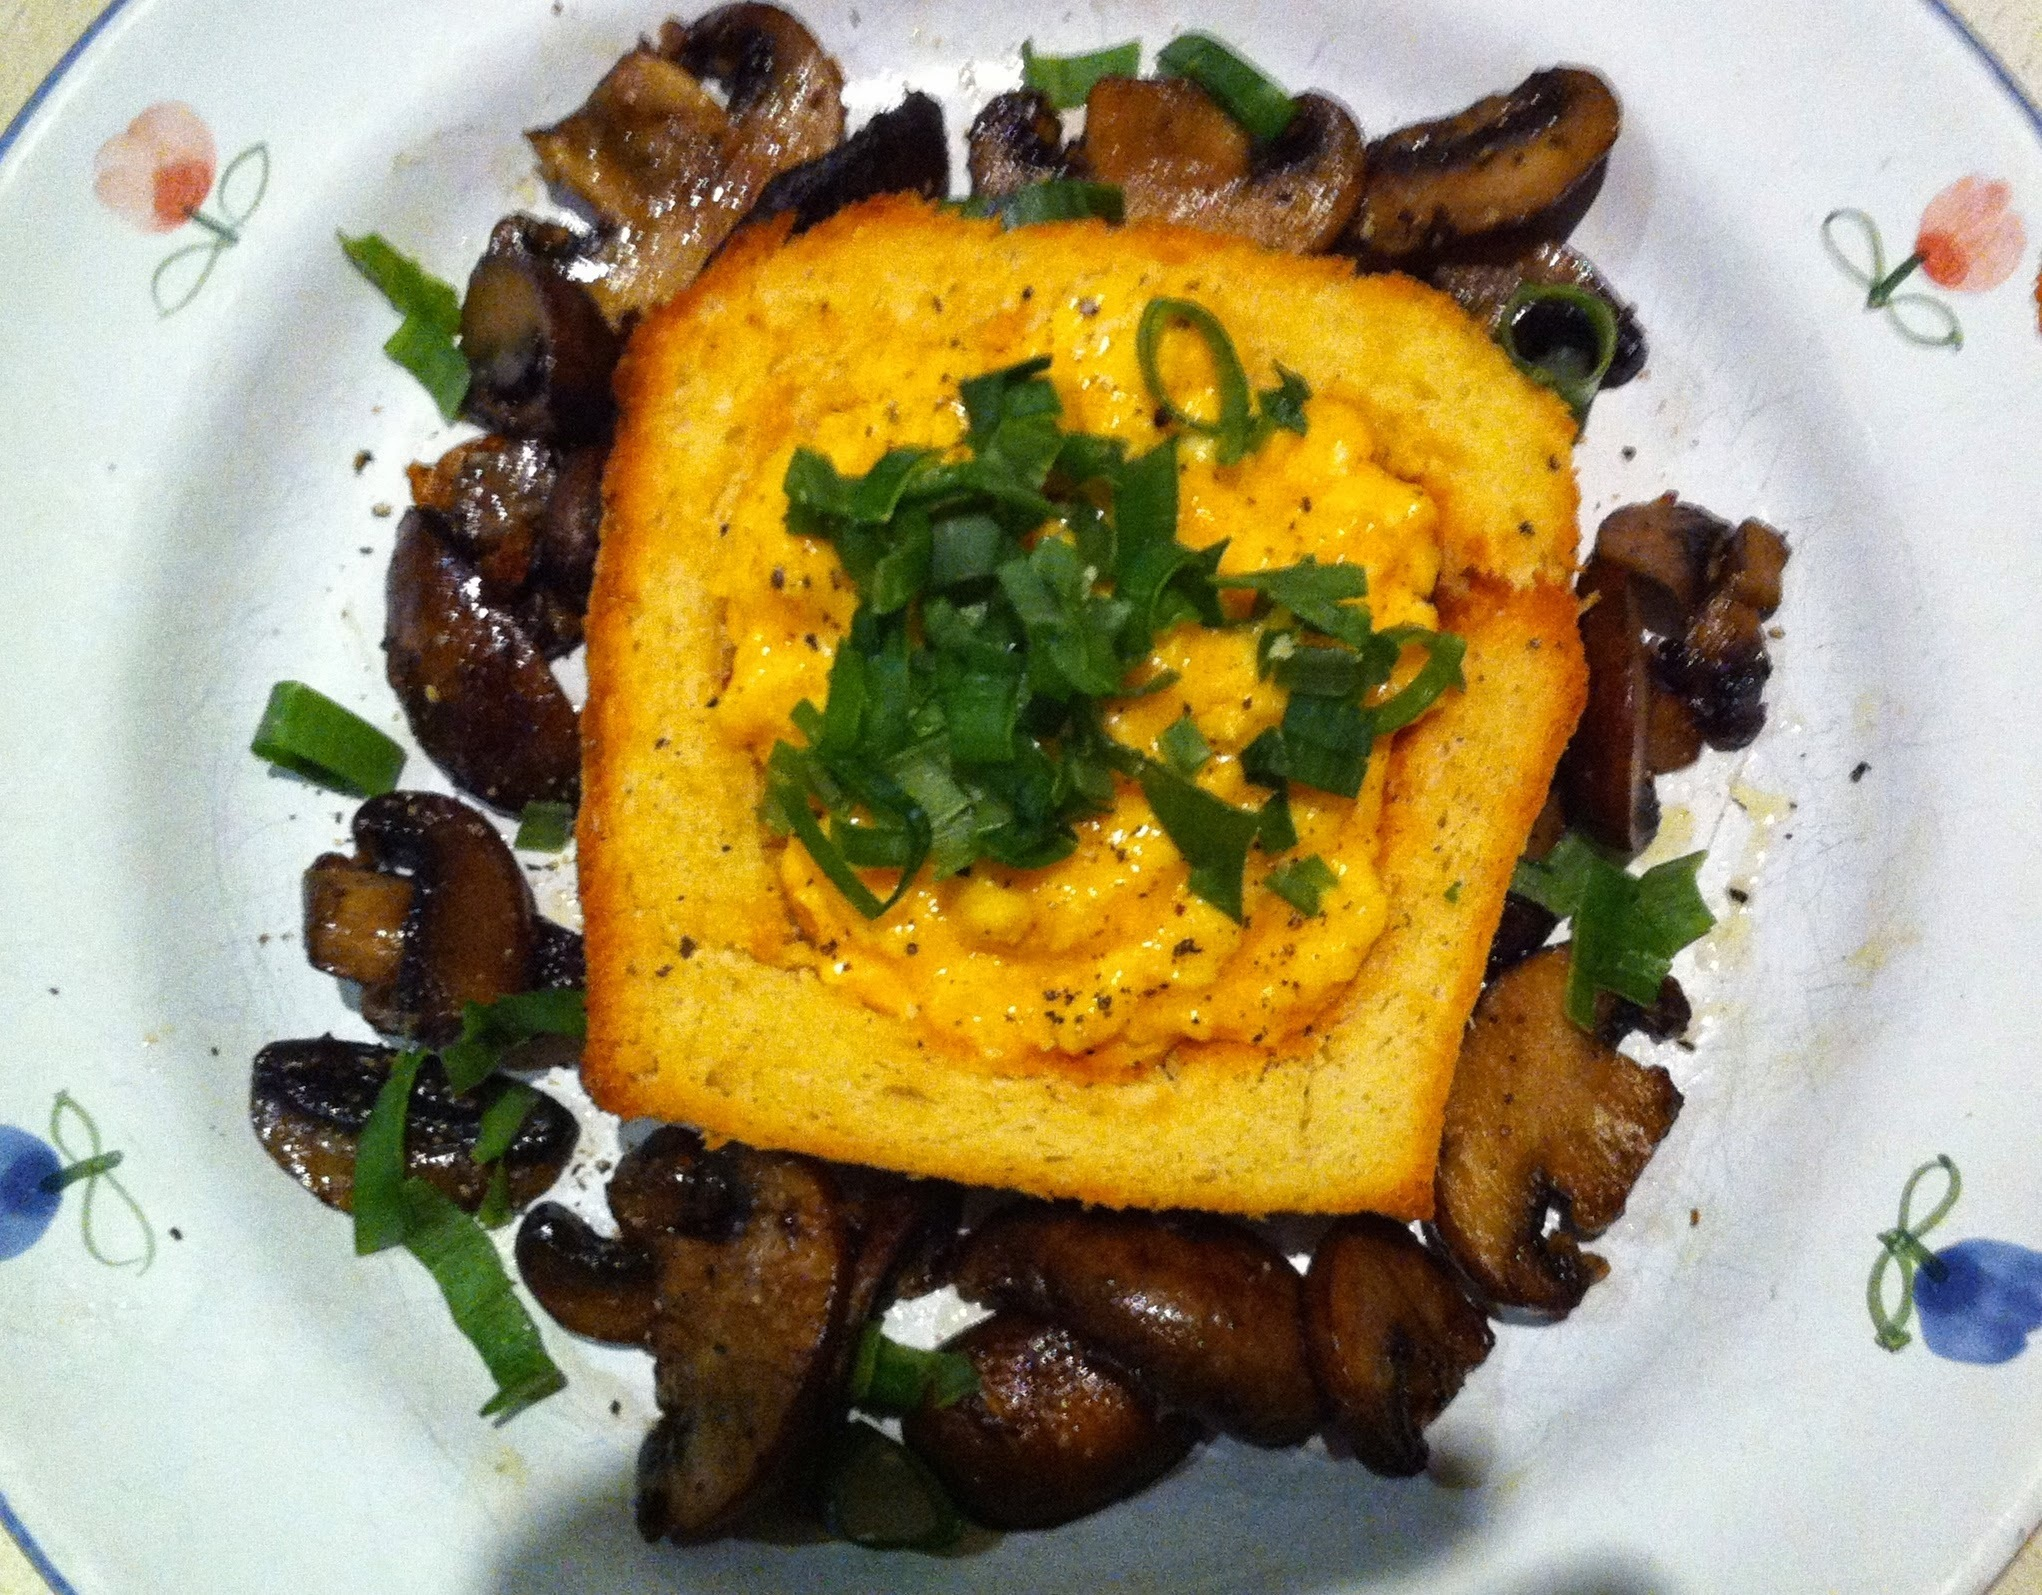 Excellent Brunch Idea - Scrambled Eggs and Mushrooms in a Toasted Bread Basket